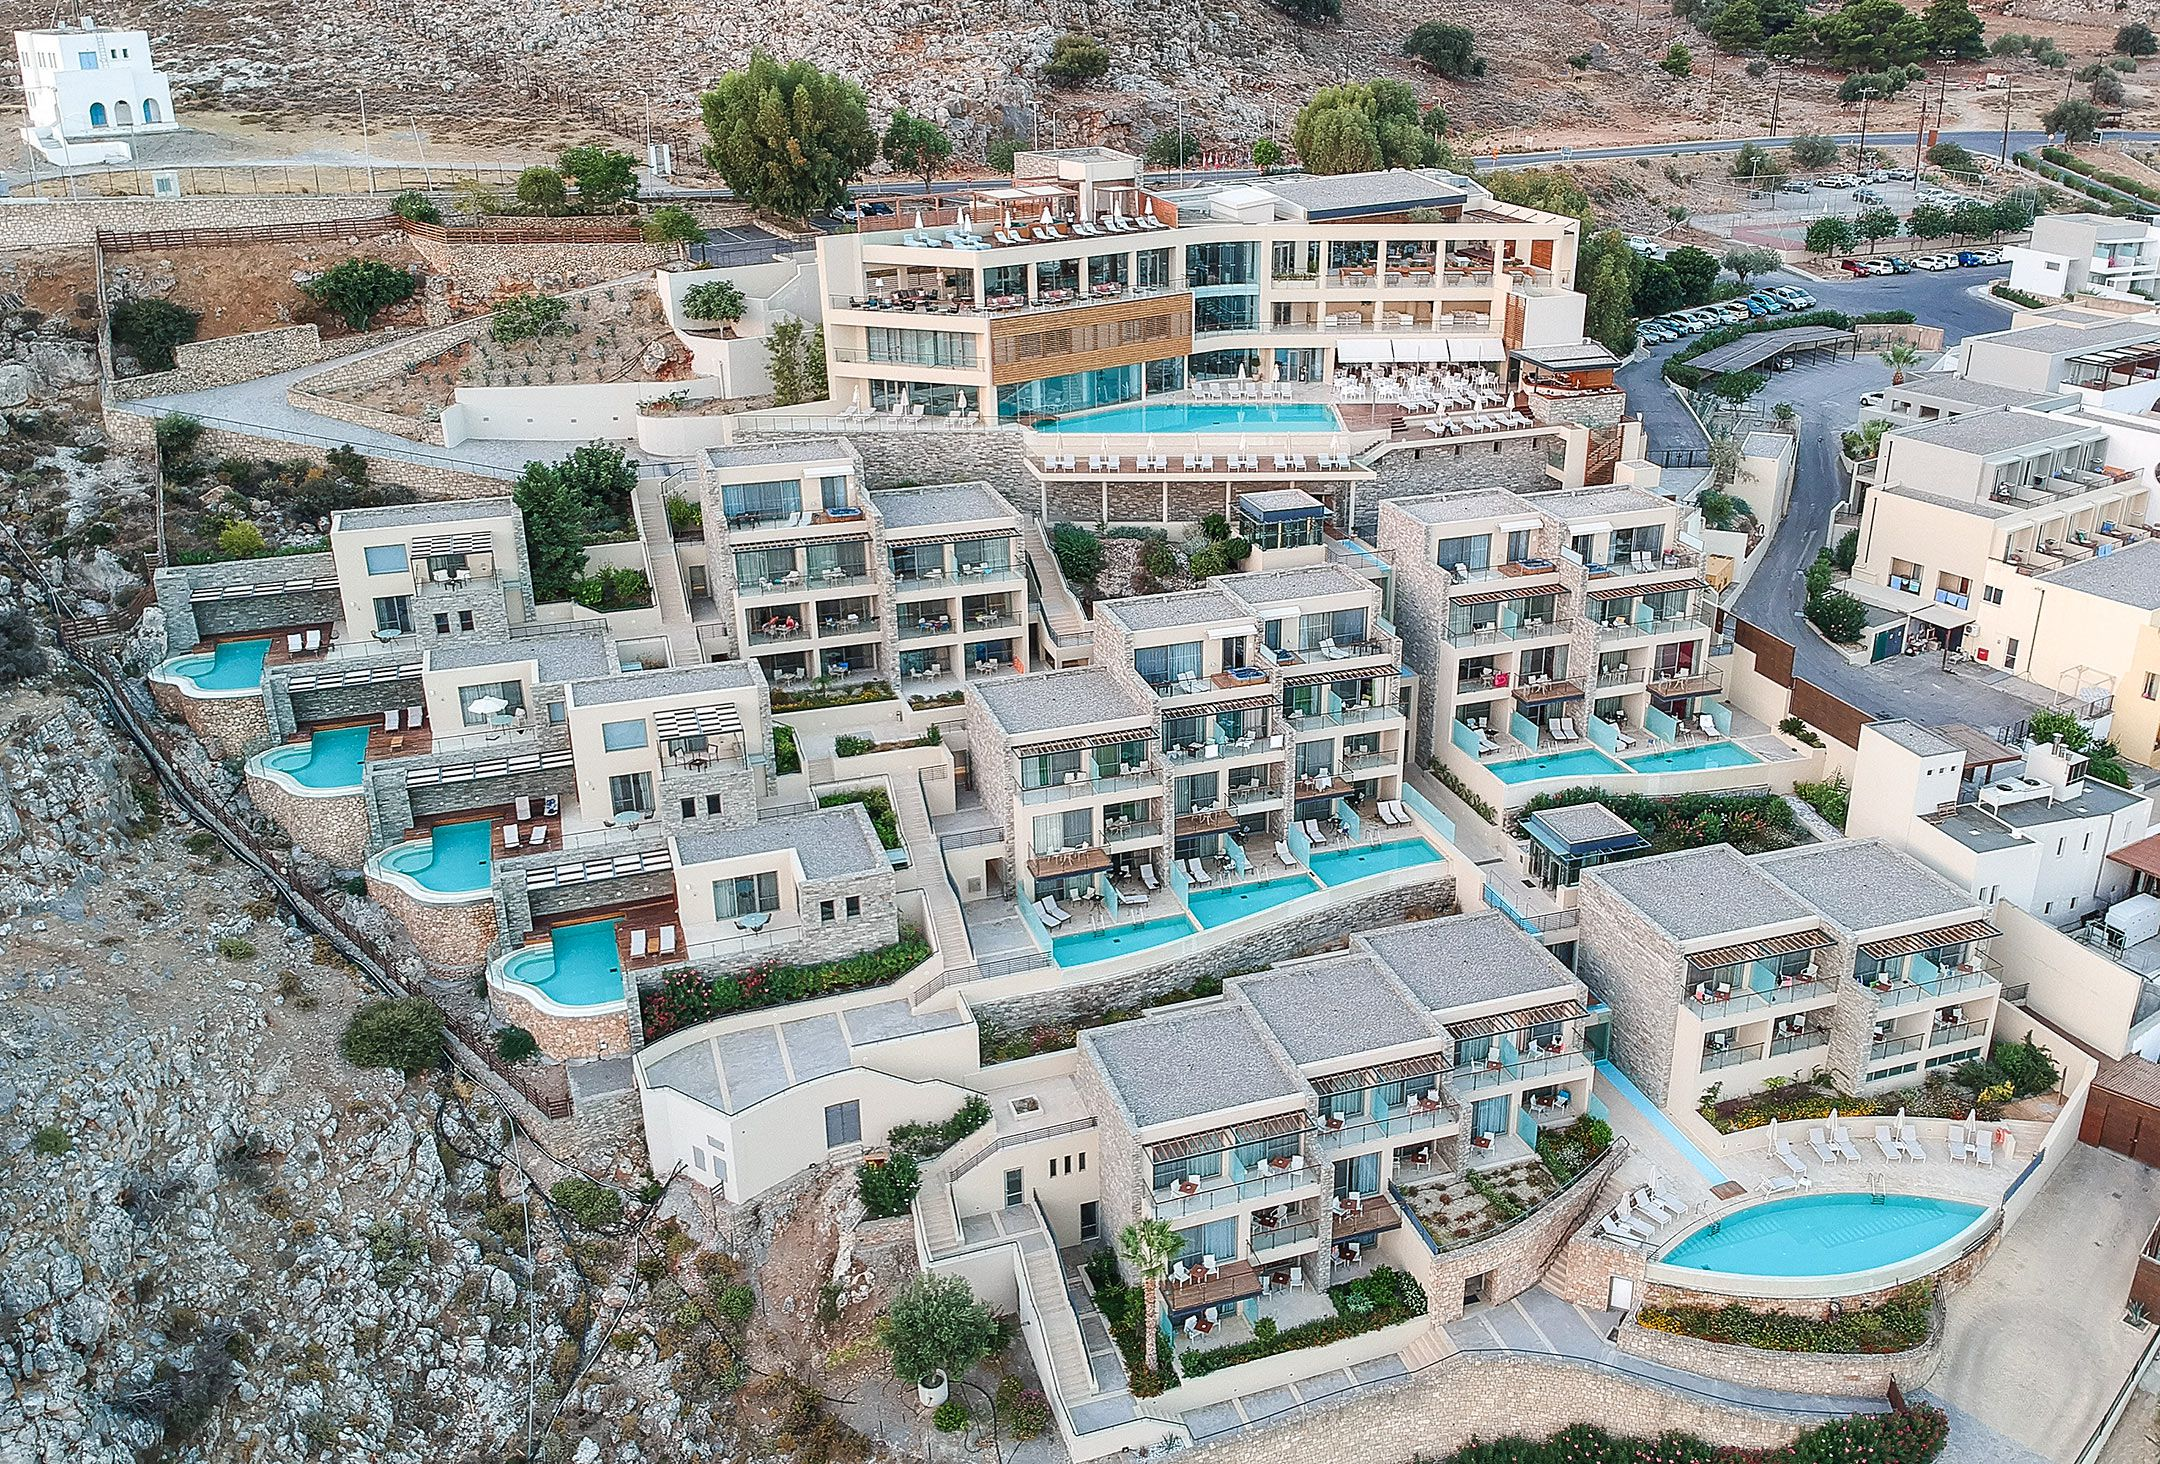 هتل هتل لیندوس بلو (Lindos Blu Luxury Hotel & Suites)